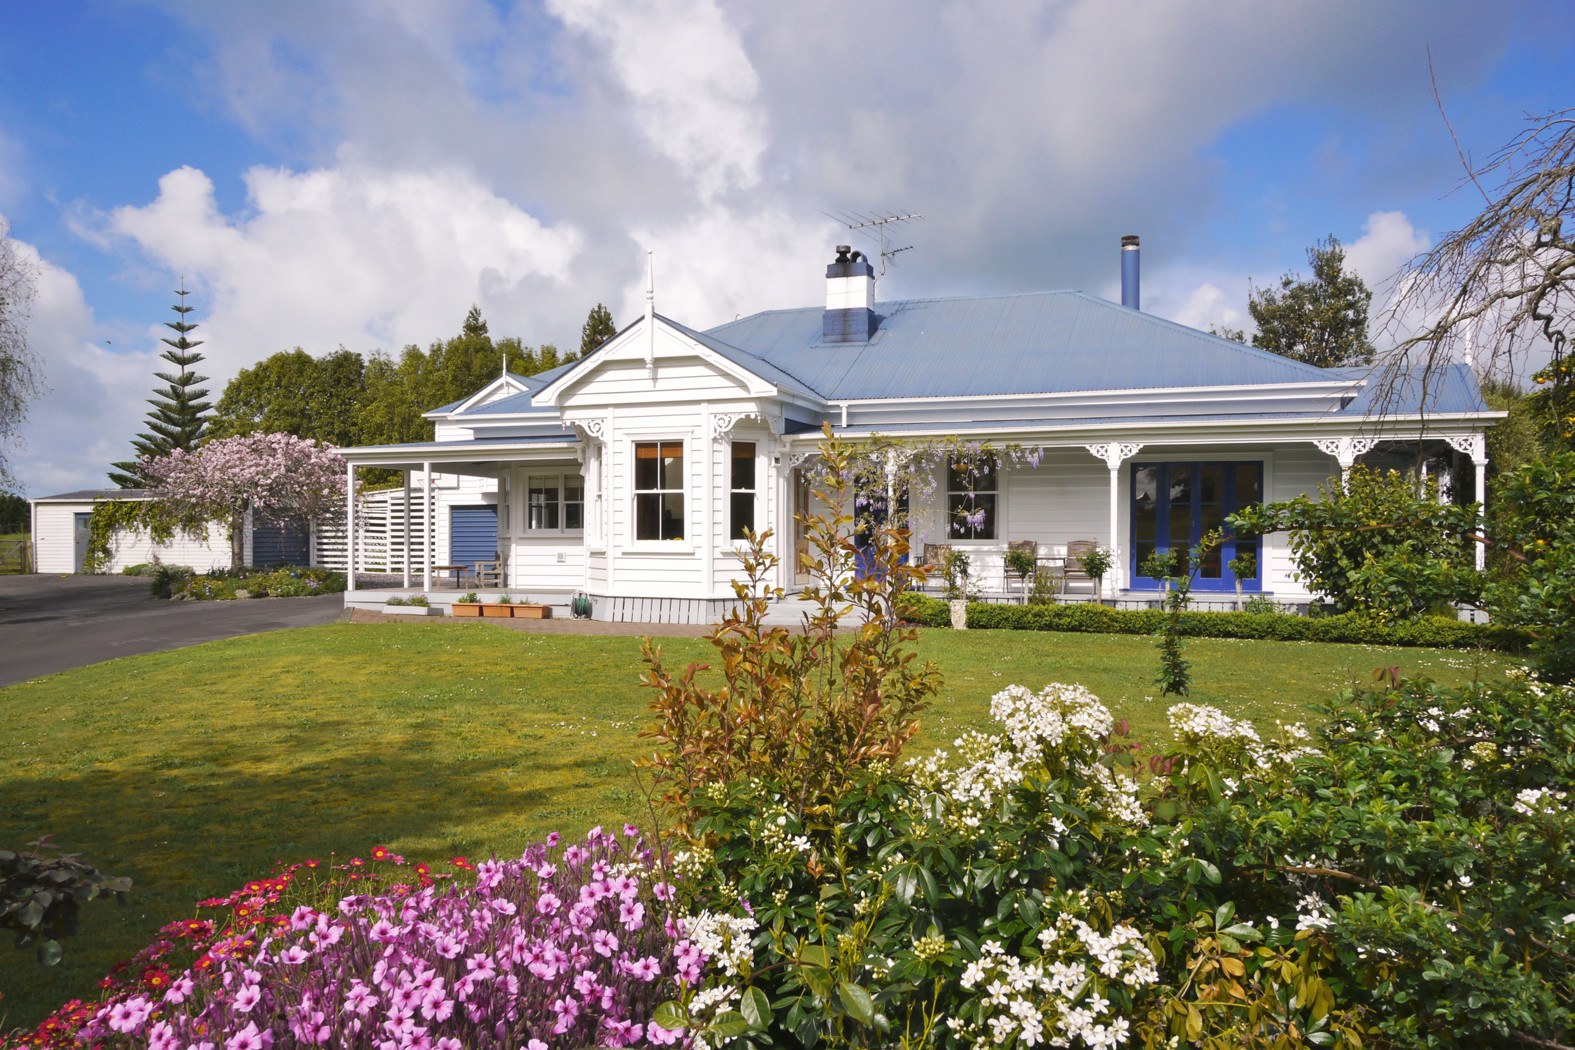 216 best country homes etc images on pinterest country homes